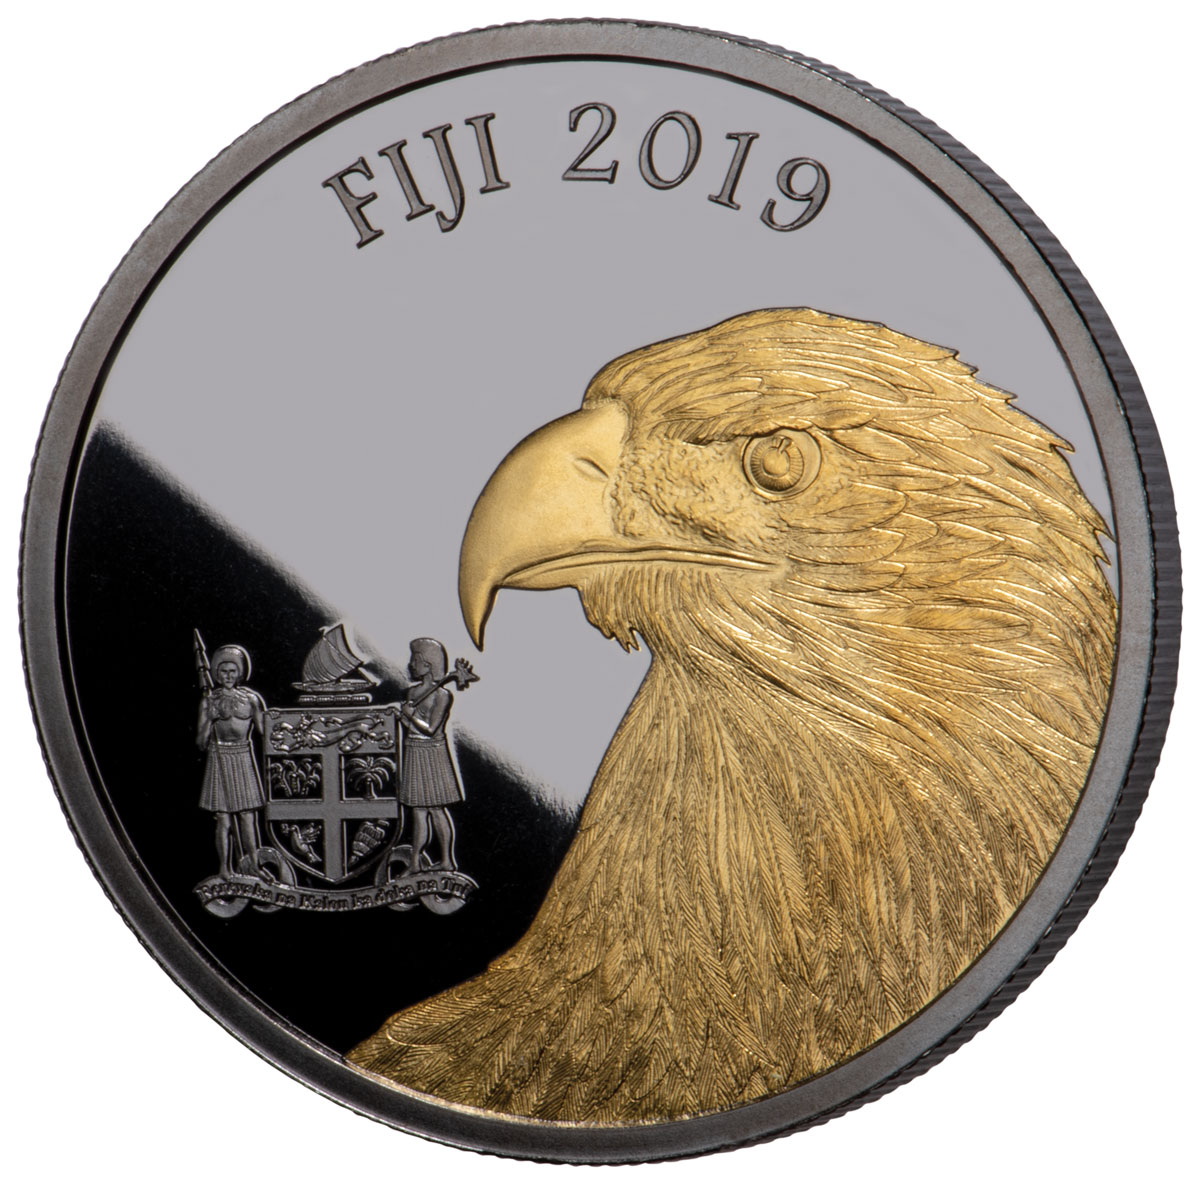 Fiji Blackened Eagle Coin